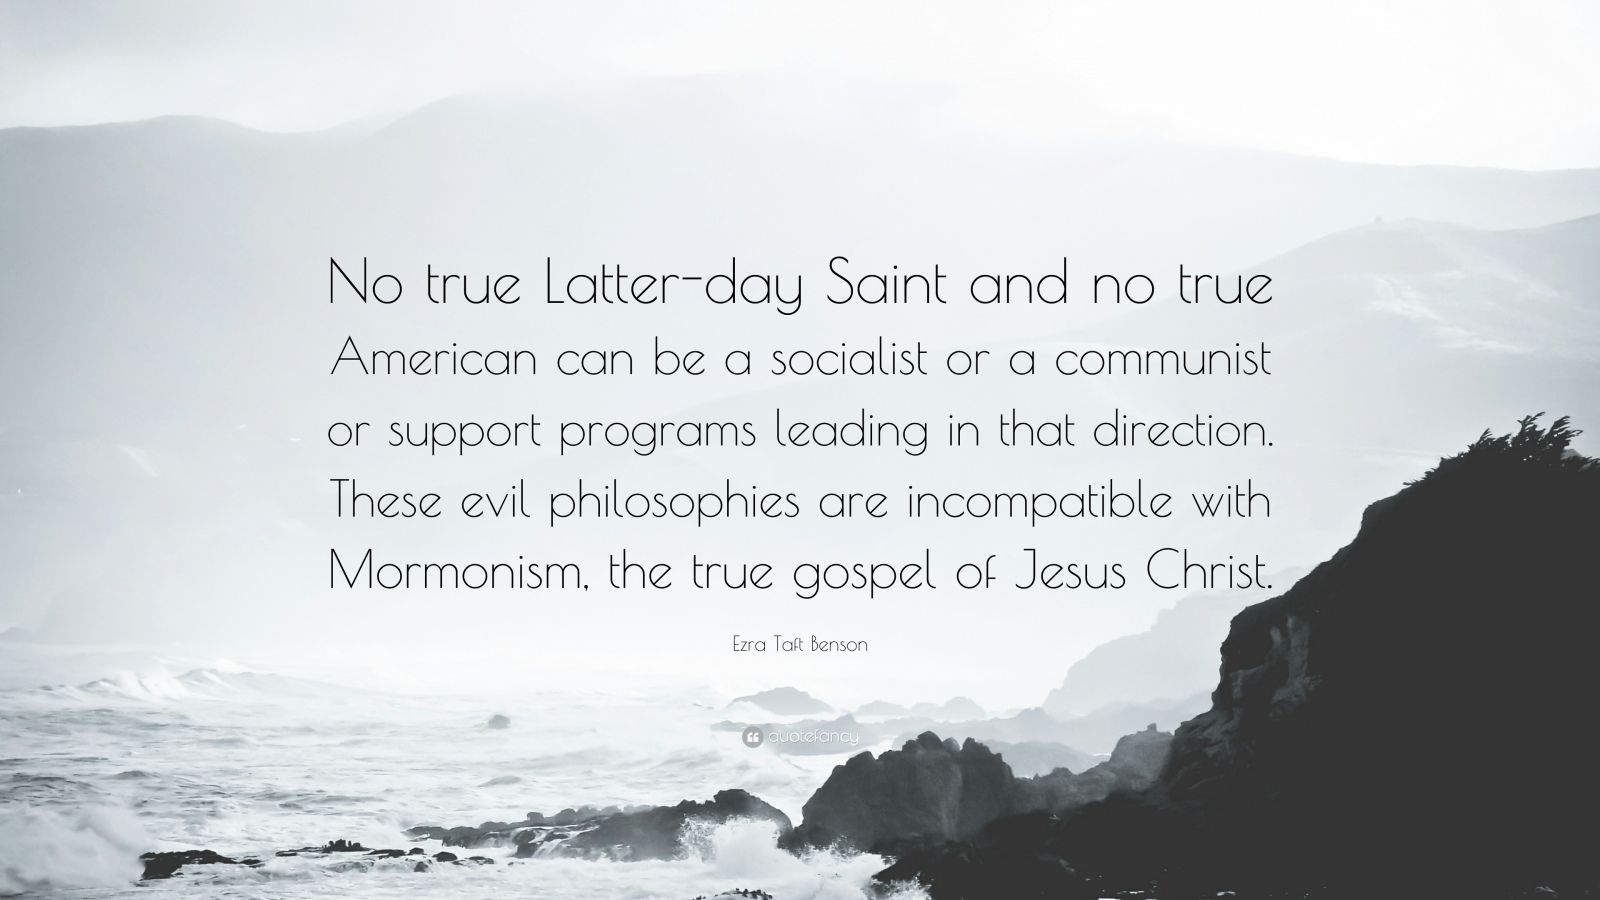 """Ezra Taft Benson Quote: """"No true Latter-day Saint and no true American can be a socialist or a communist or support programs leading in that direction. These evil philosophies are incompatible with Mormonism, the true gospel of Jesus Christ."""""""